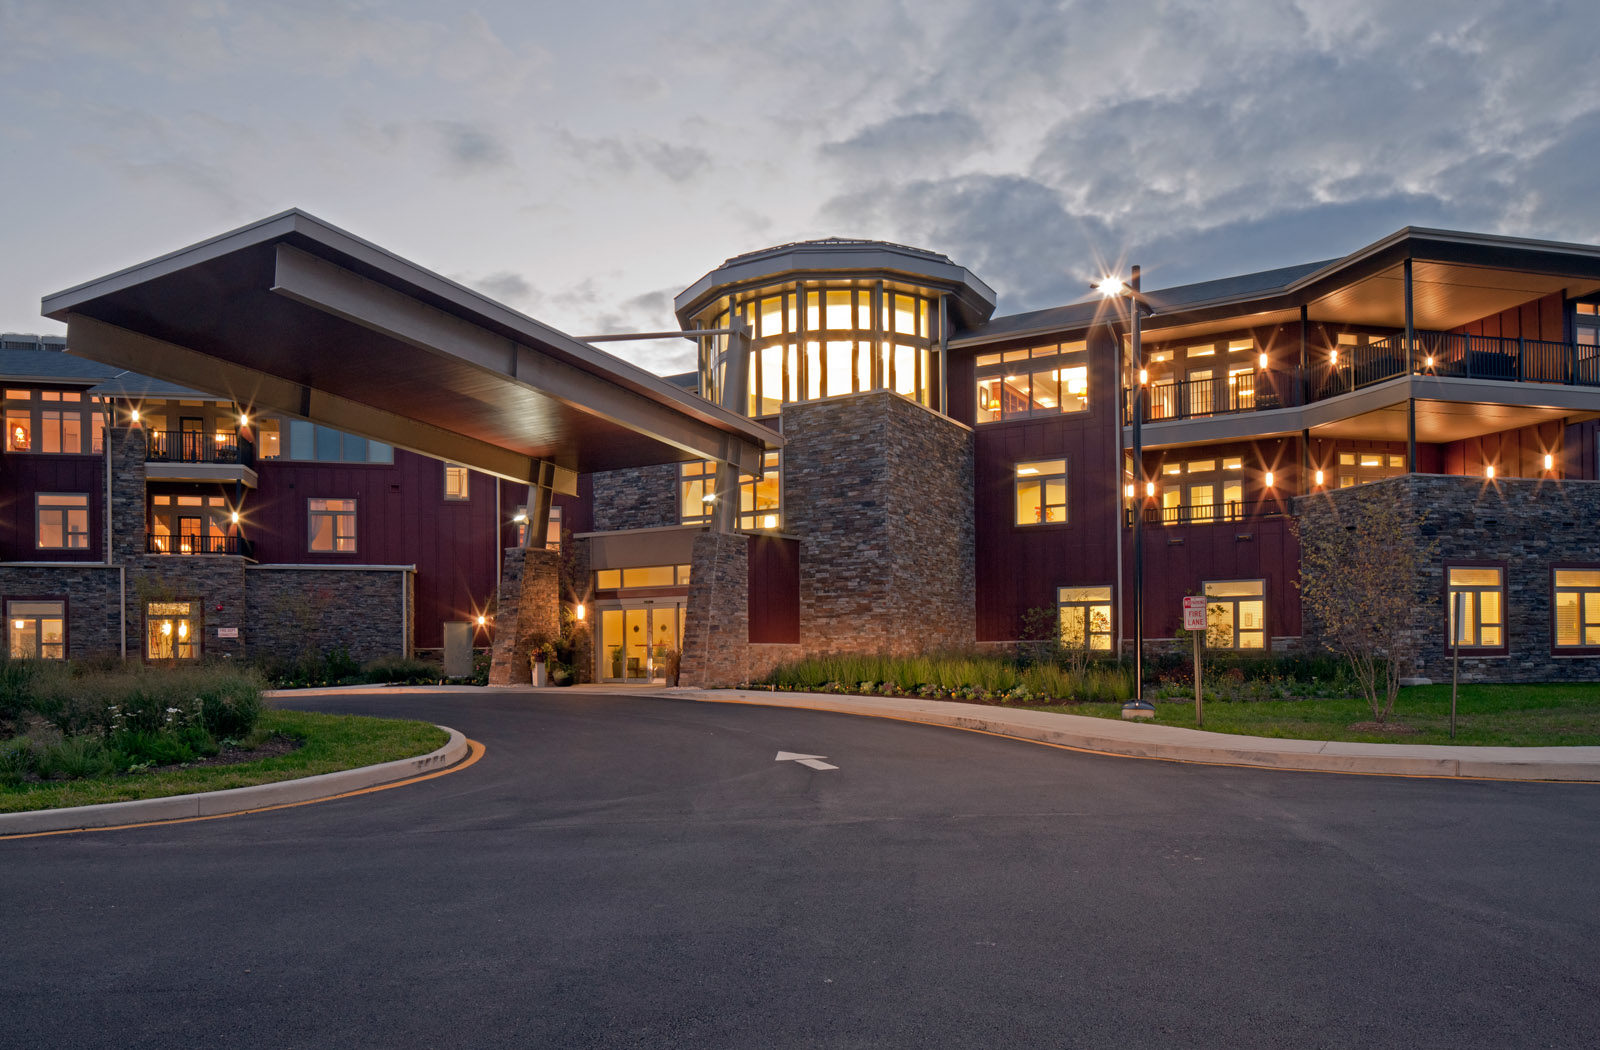 The Summit Senior Living at Hockessin